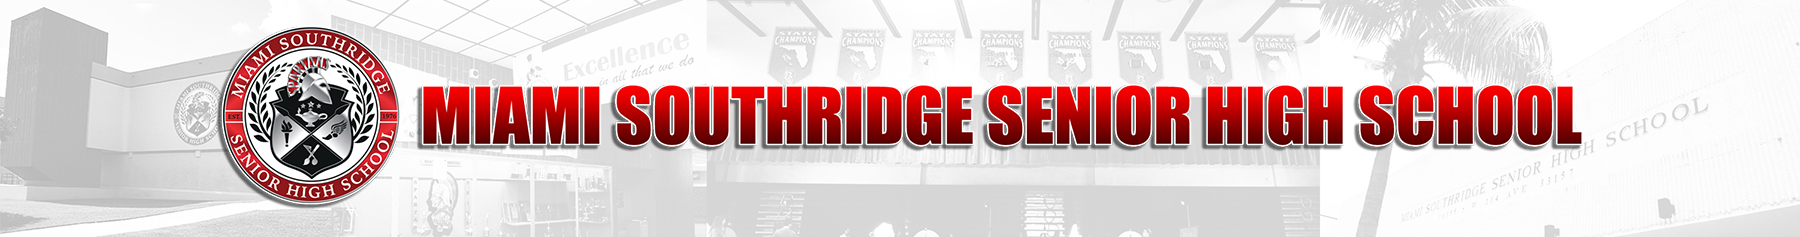 Miami Southridge Senior High